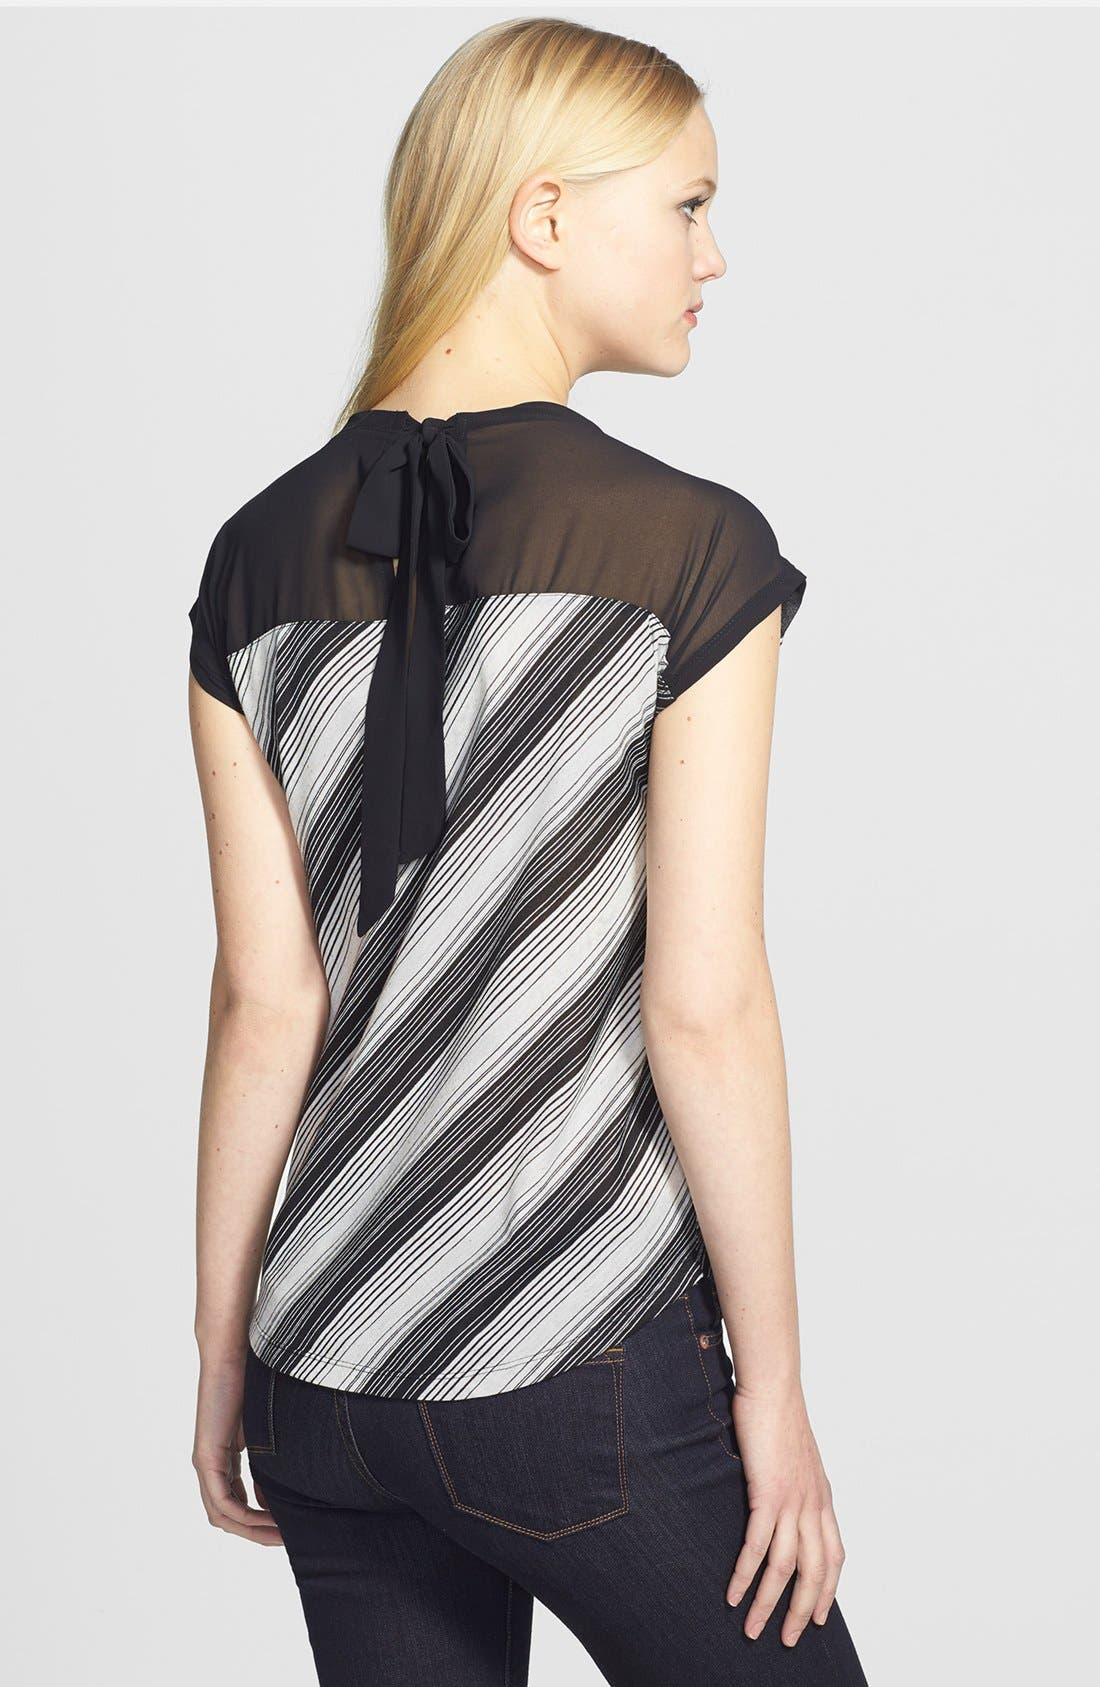 Alternate Image 1 Selected - Two by Vince Camuto 'Close Stripe' Back Tie Top